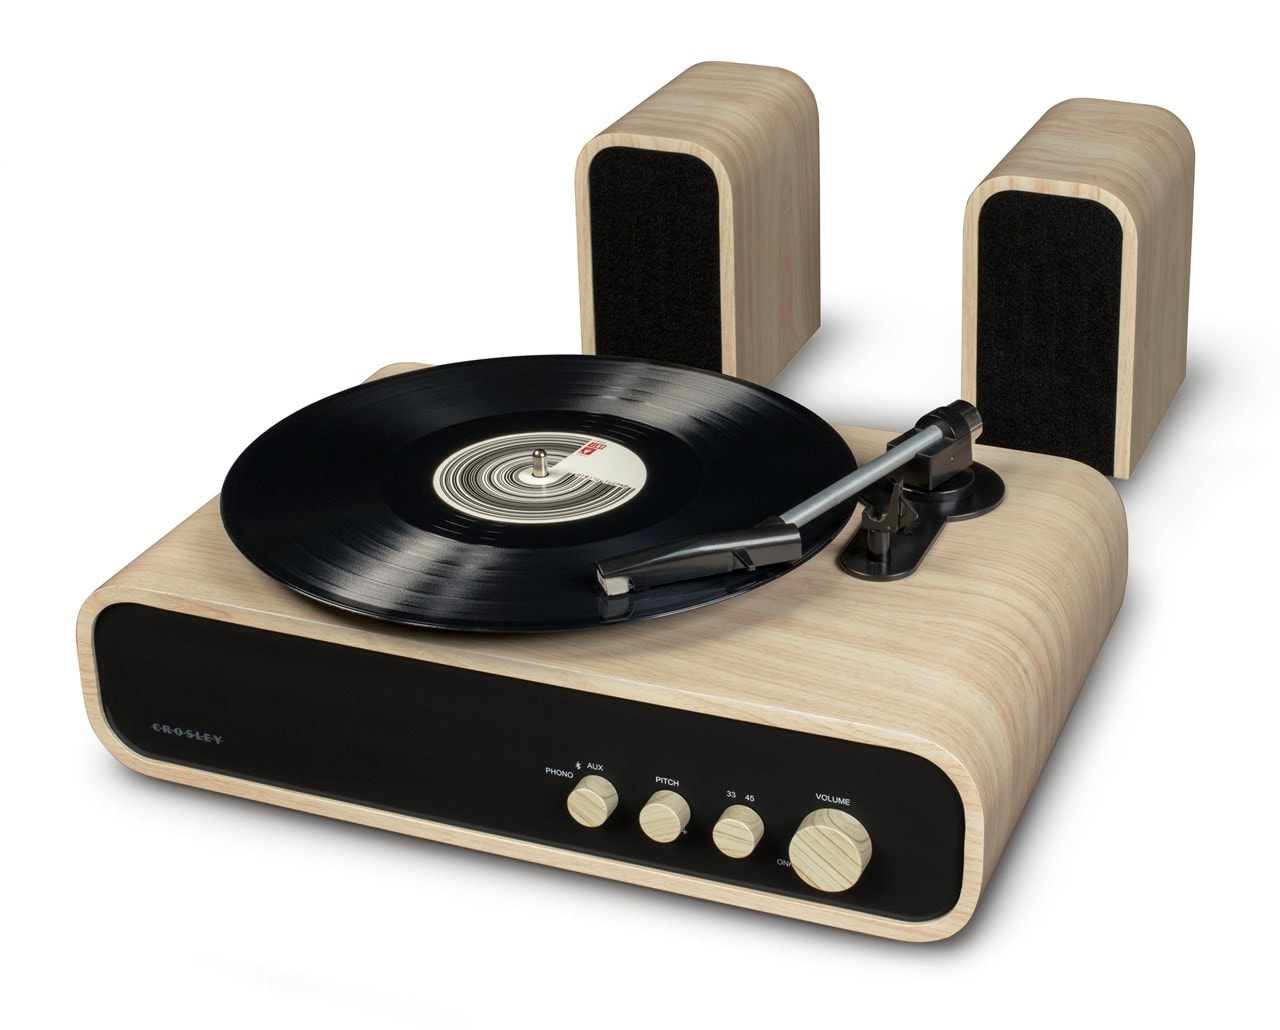 Crosley Gig Turntable & Speakers - 2